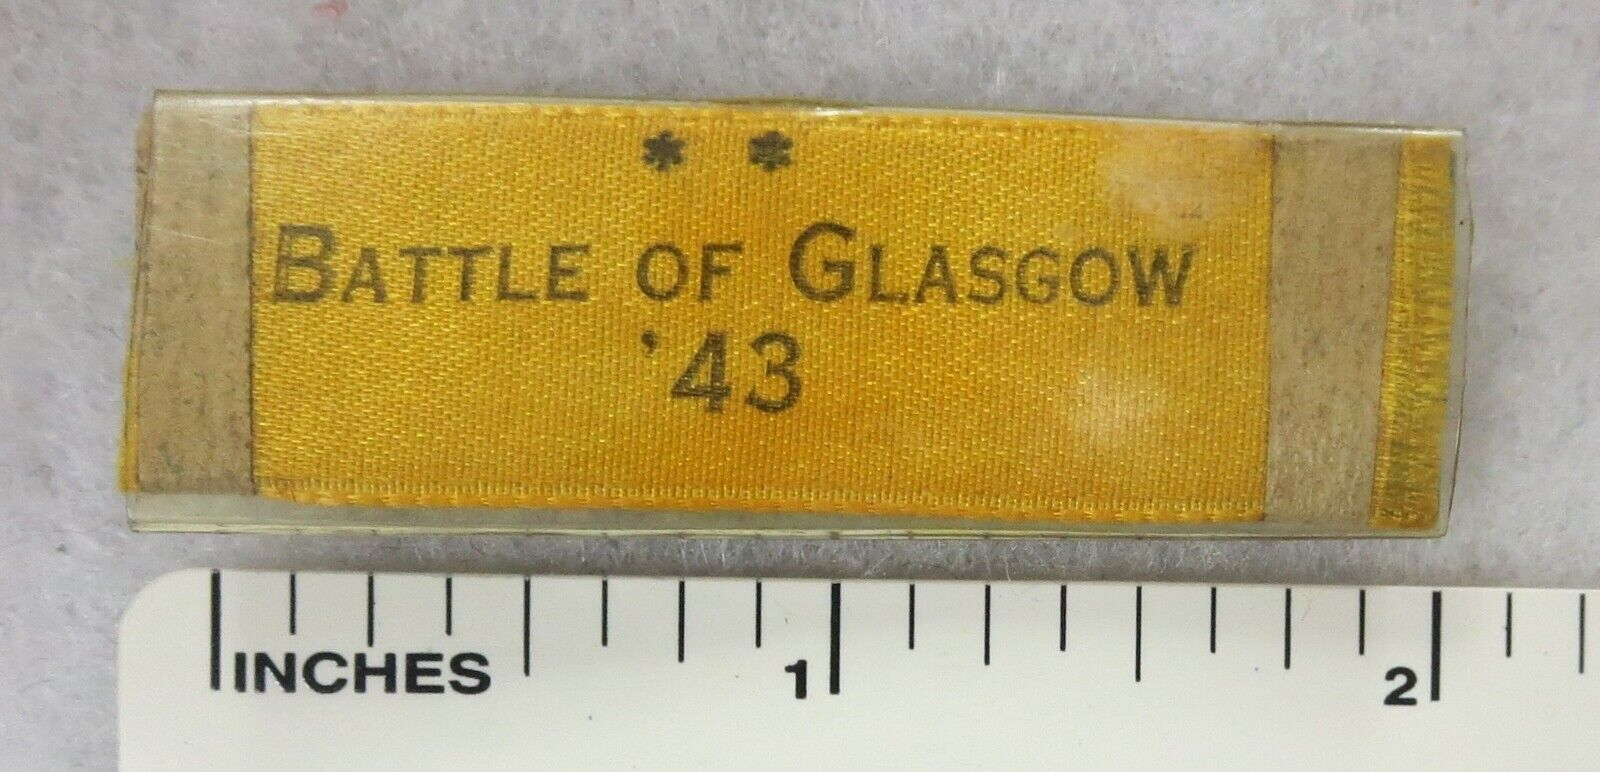 BATTLE Of GLASGOW 1943 Original WW2 G.I. Made Souvenir Of Service Novelty Ribbon - $19.95